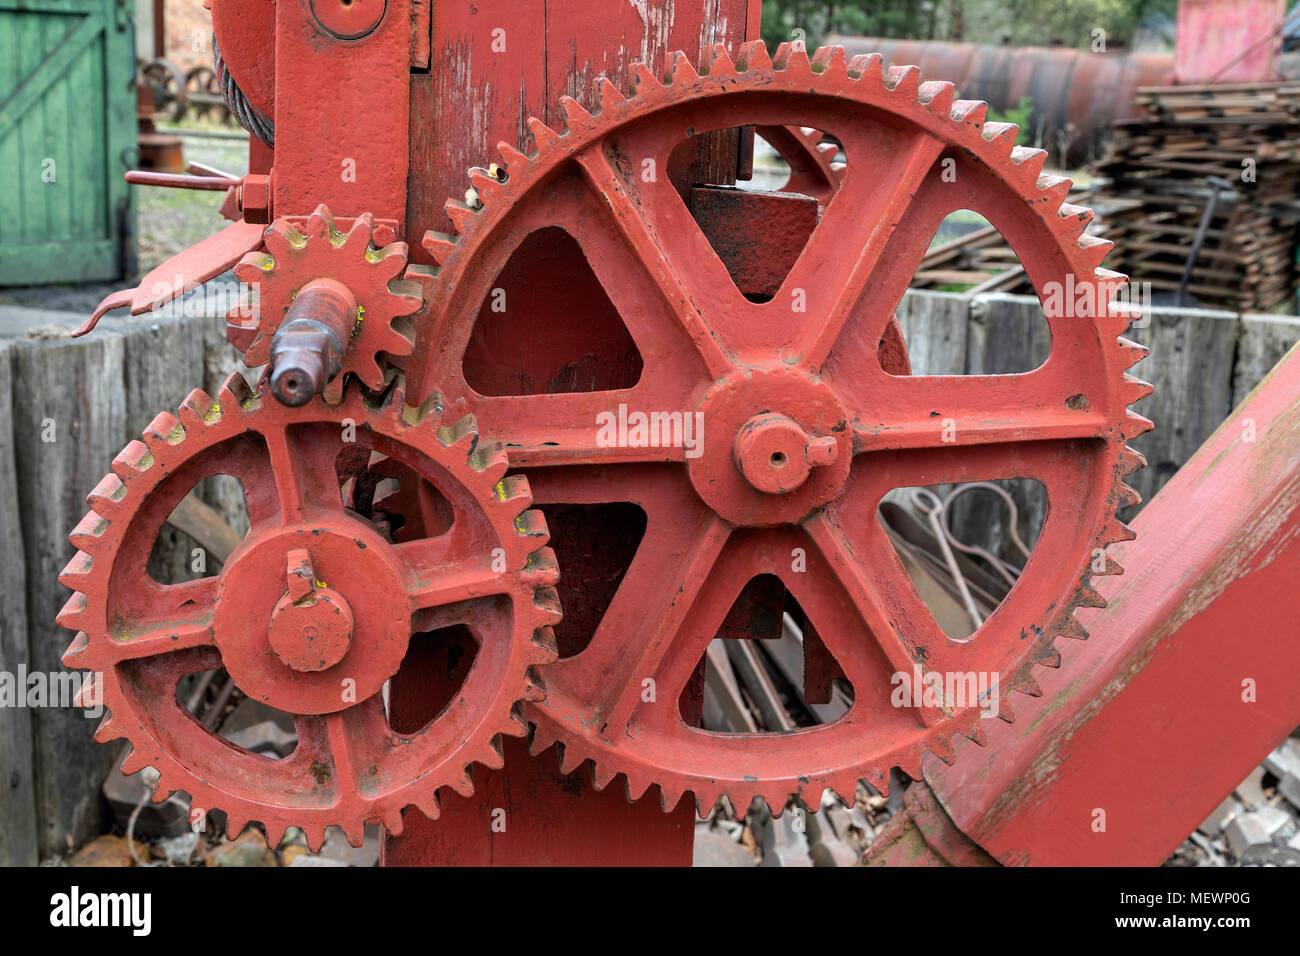 Industry - old cogs and gears on industrial machinery. - Stock Image